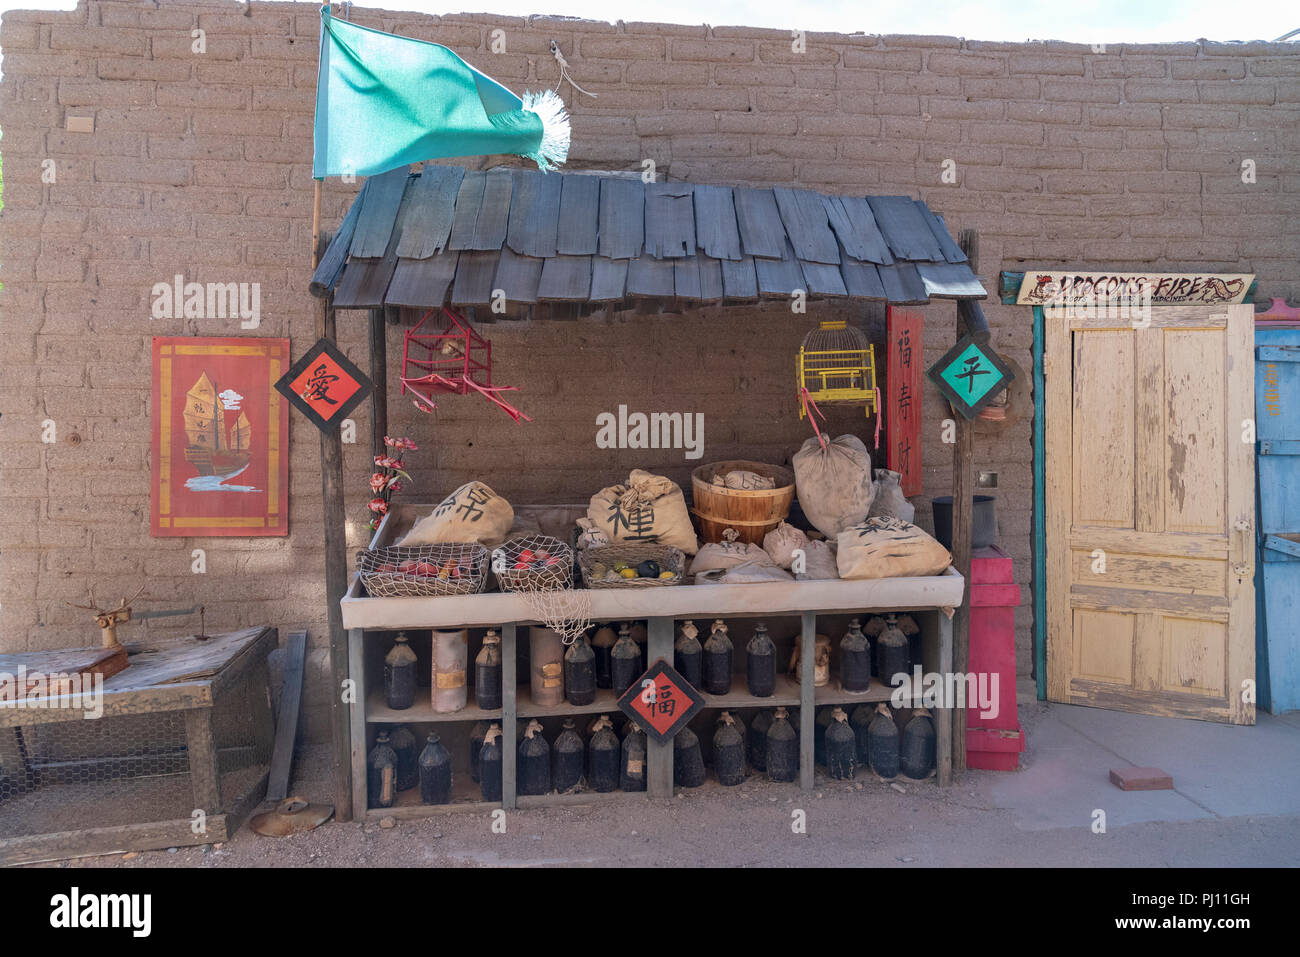 """Old Tucson movie studios back alley, with wooden stand displays various Chinese bags of goods, wooden door with sign reading """"Dragon Fire"""" Adobe brick. - Stock Image"""